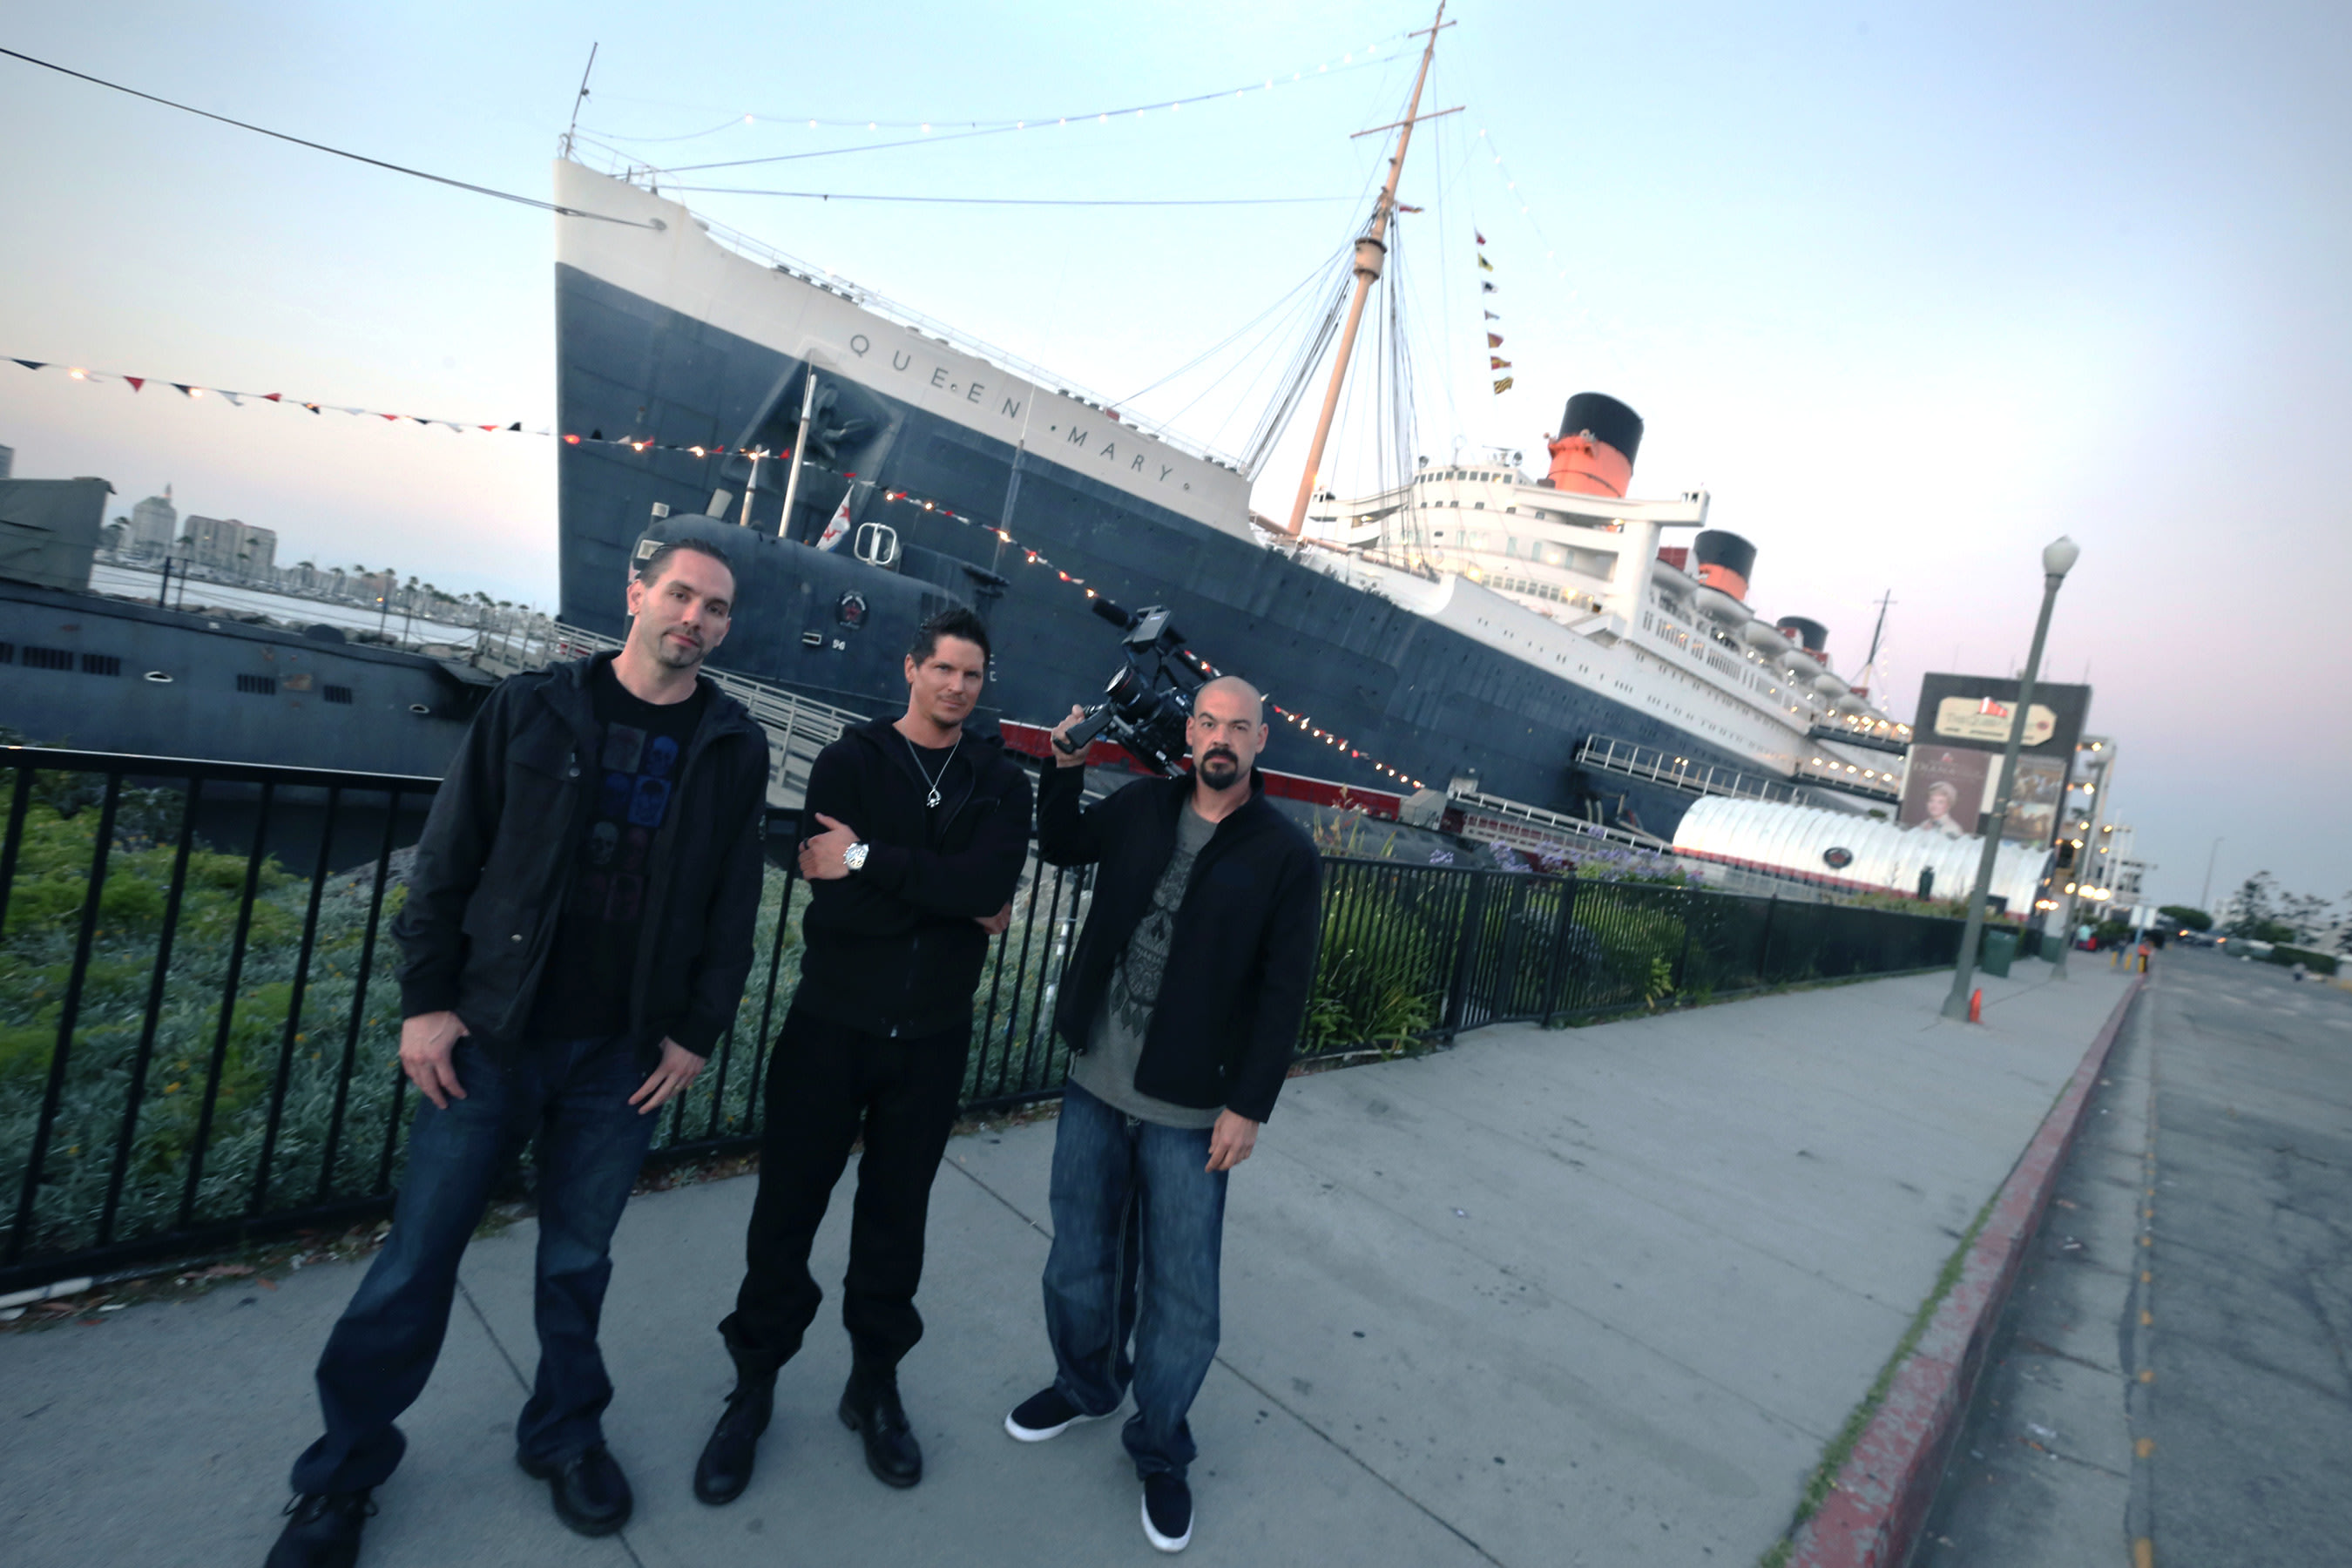 Ghost Adventures: Nick Groff, Zak Bagans and Aaron Goodwin outside RMS Queen Mary before lockdown